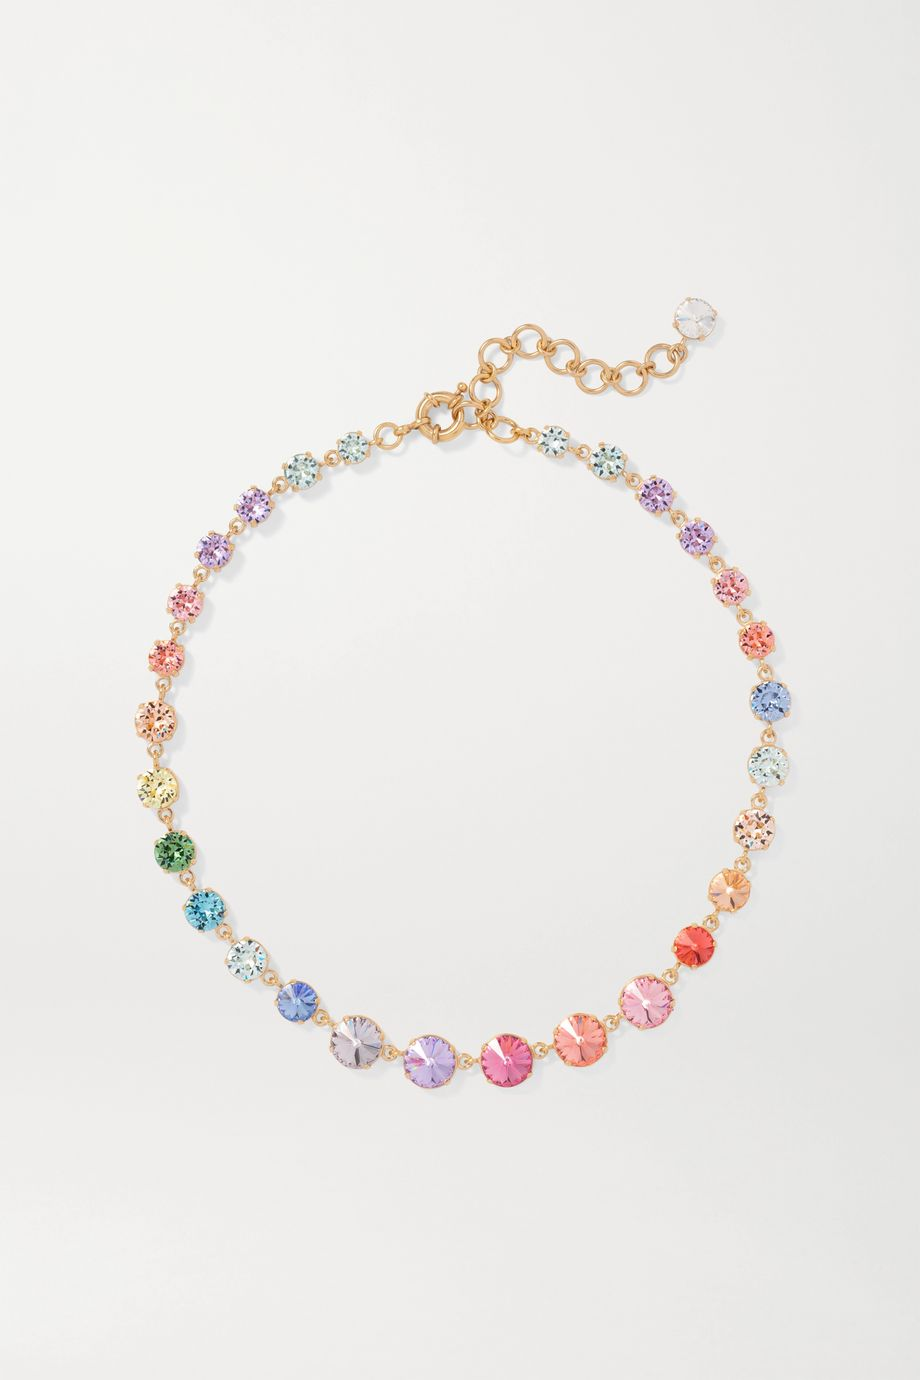 Roxanne Assoulin Technicolor Mini gold-plated Swarovski crystal necklace